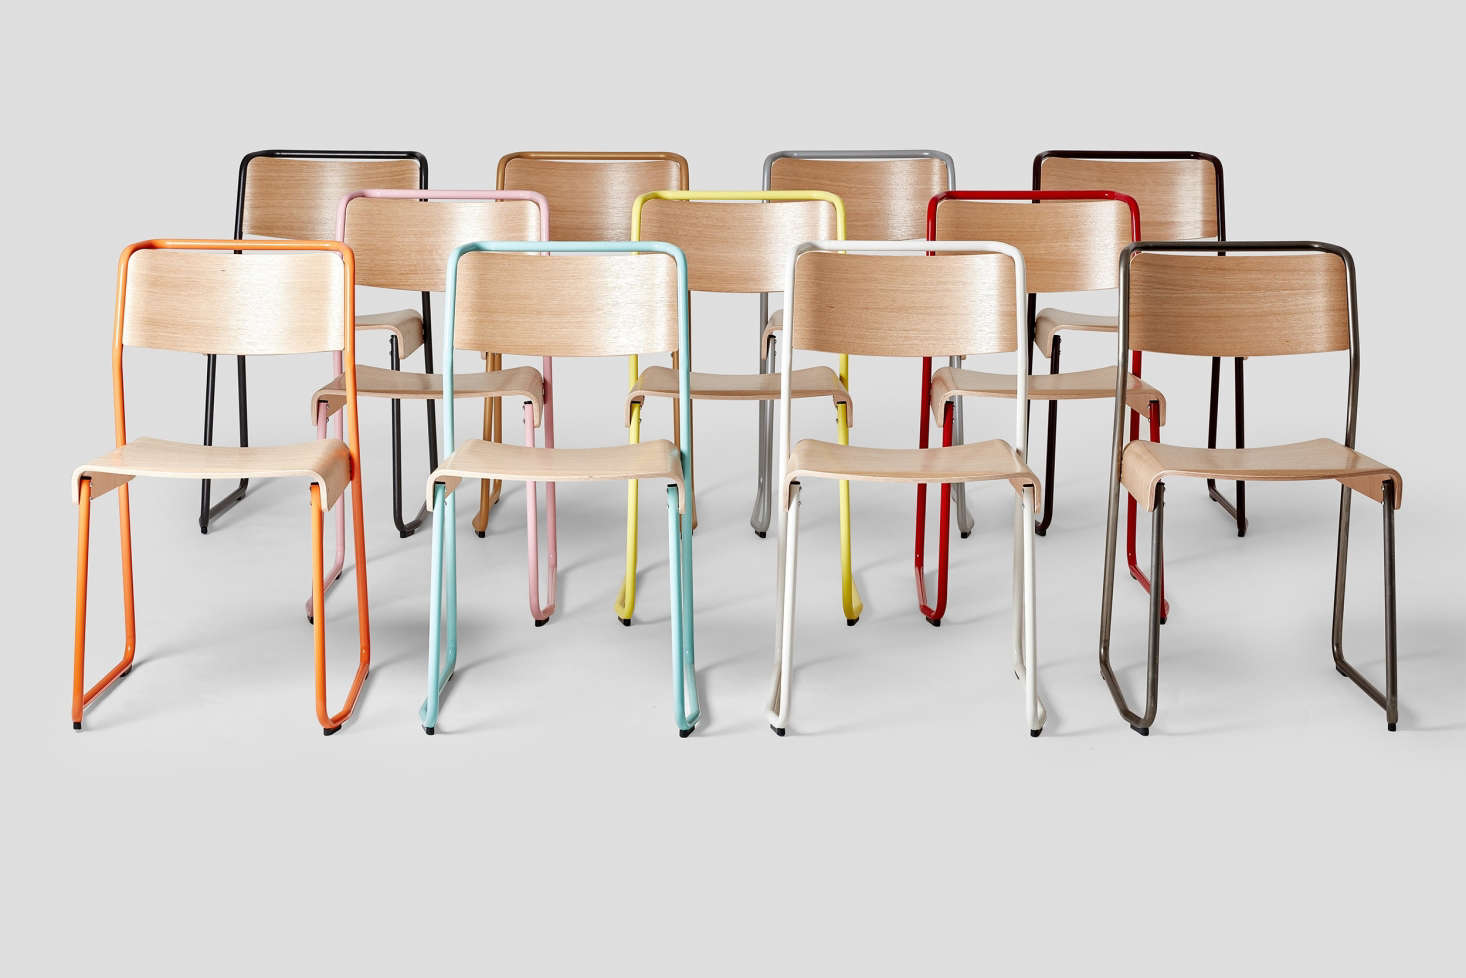 Annie says Vintage-Style School Chairs Are Having a Moment, and these Canteen Utility Chairs from Very Good and Proper are great options.